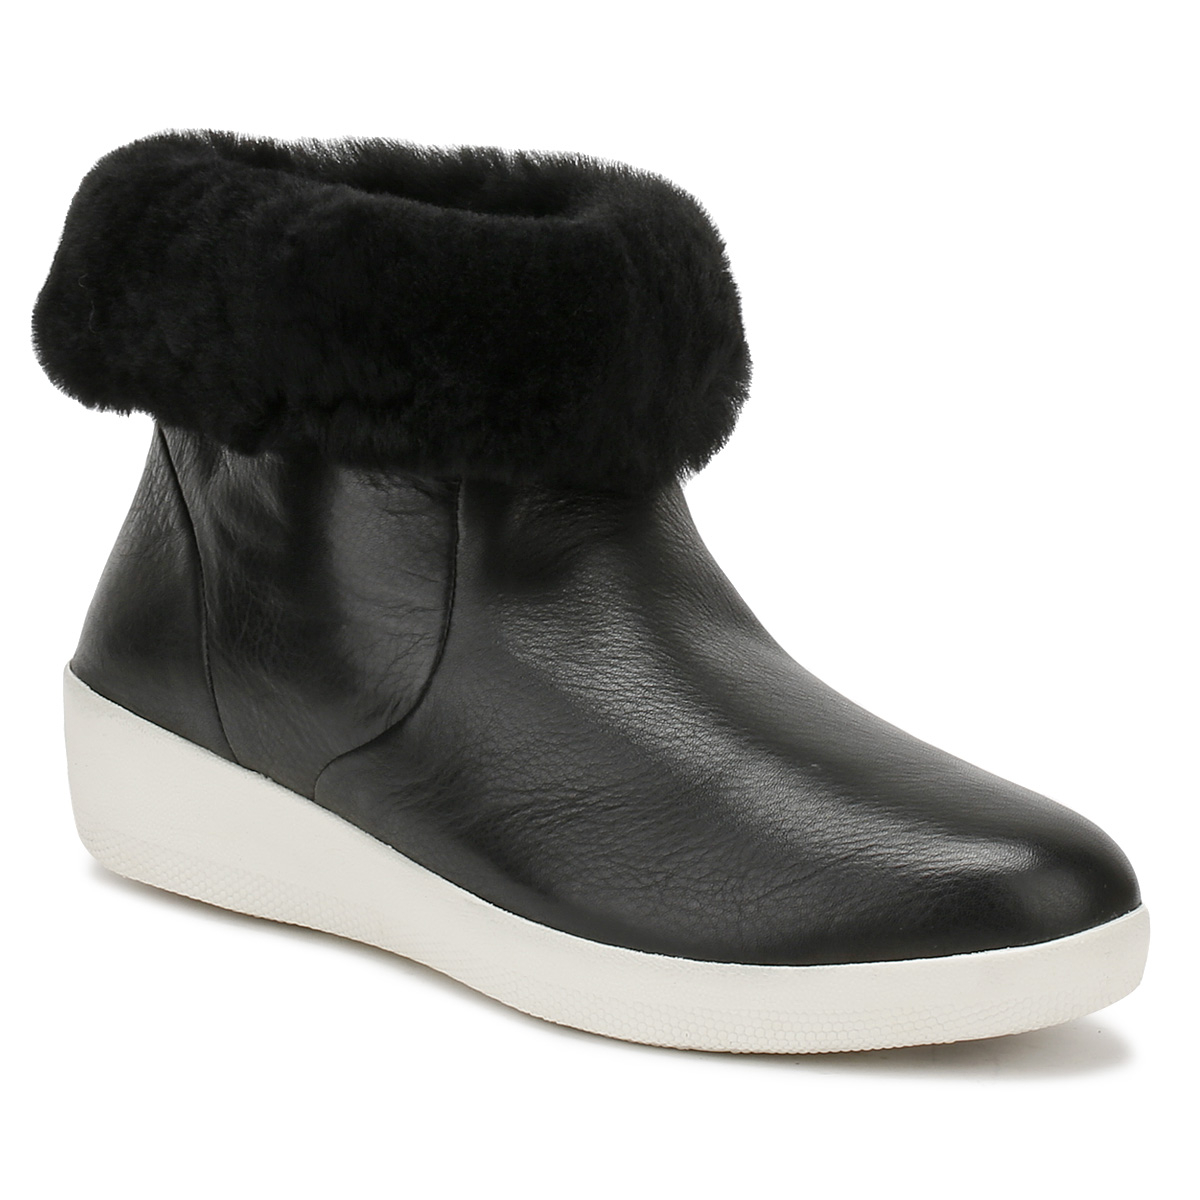 2a47eea5d220 FitFlop Skatebootie - Black Leather Womens BOOTS 3 UK